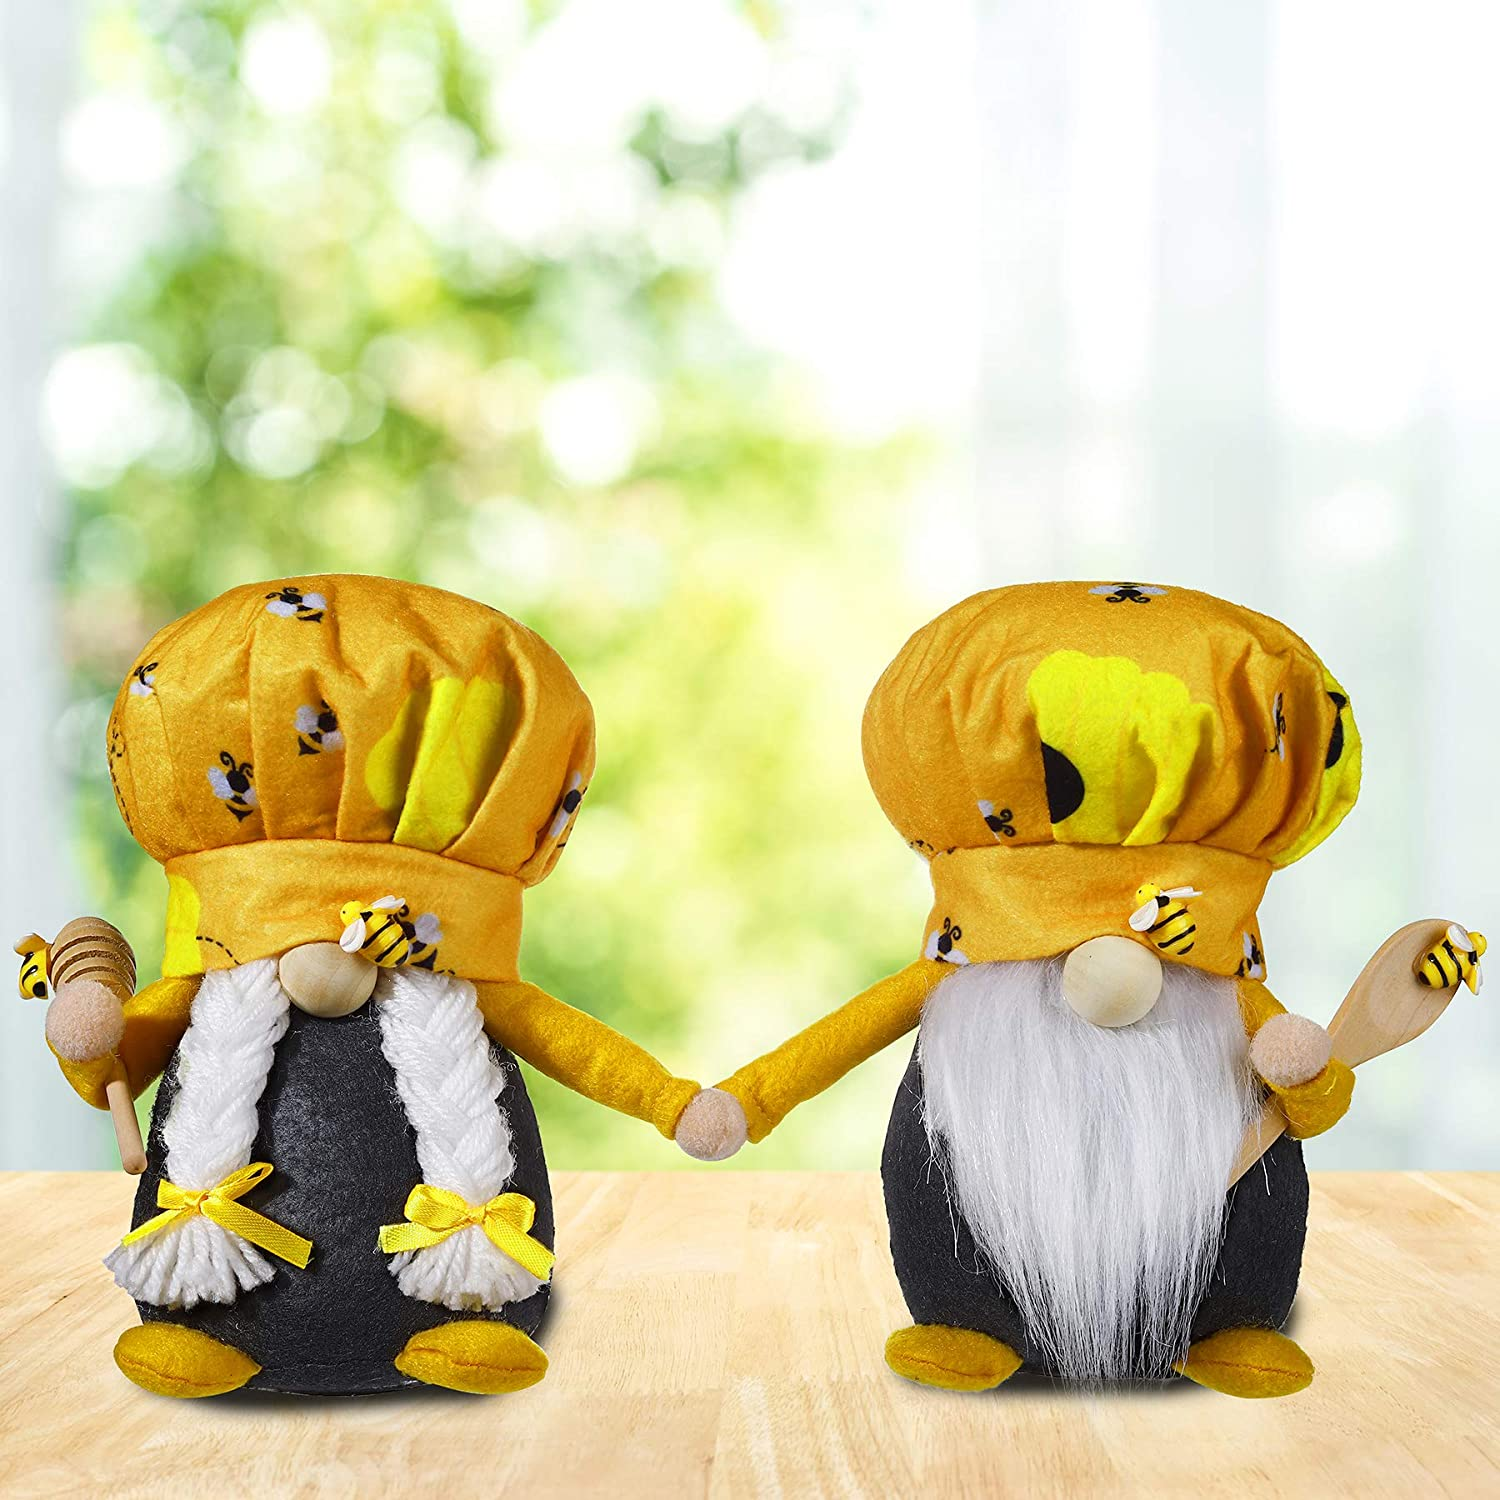 Couple Chef Gnome Set of 2, Spring Autumn Harvest Thanksgiving Holiday Gnome with Bee Ornament for Home Table Kitchen Shelf Fireplace Farmhouse Tiered Tray Decor, Nordic Swedish Elf Plush Gnomes Gift